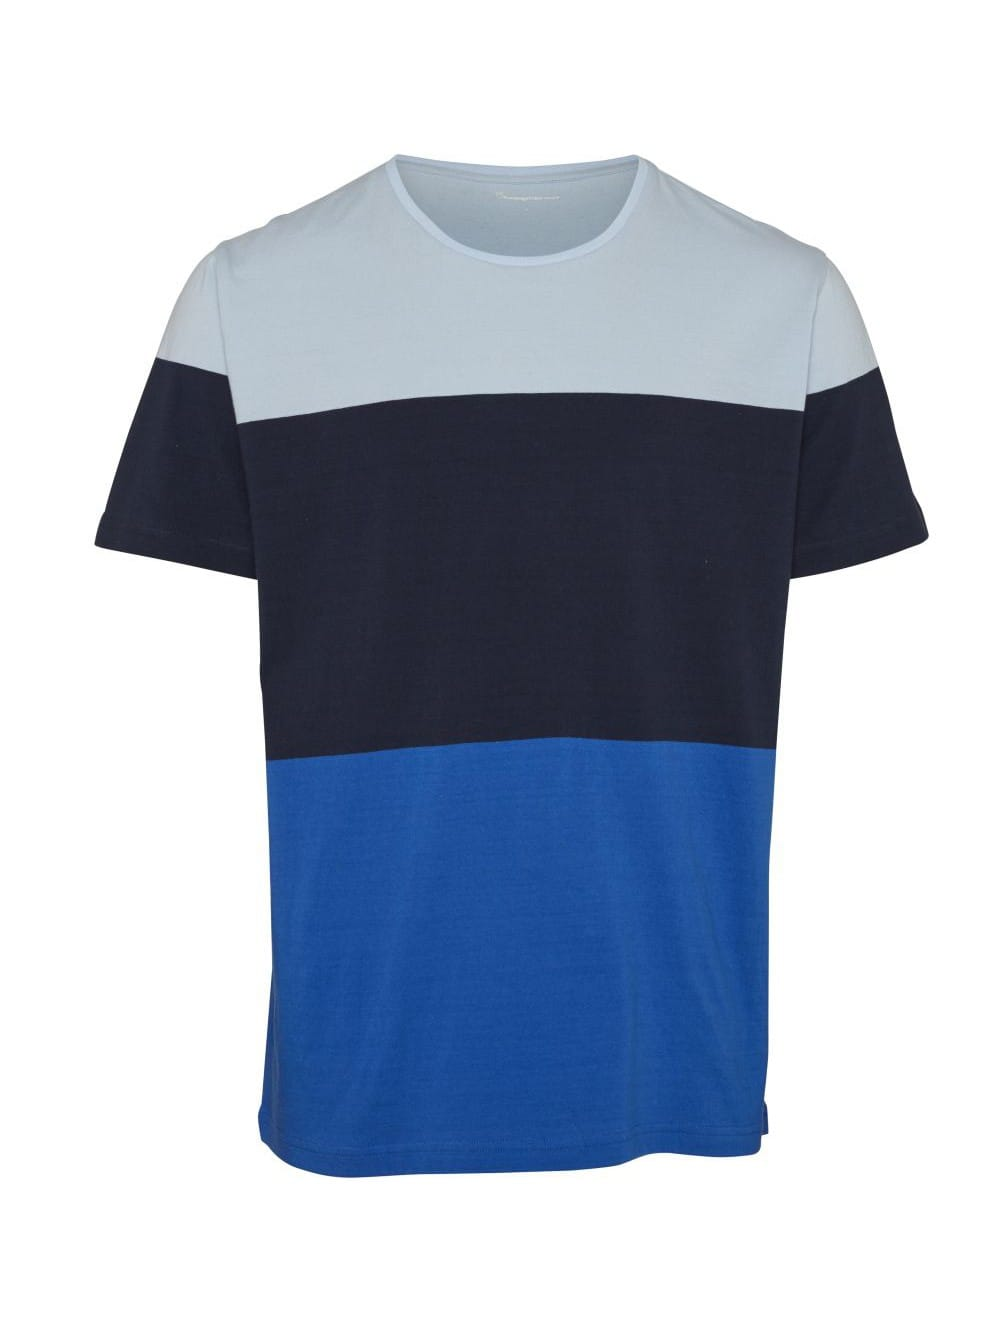 Block striped organic cotton t-shirt